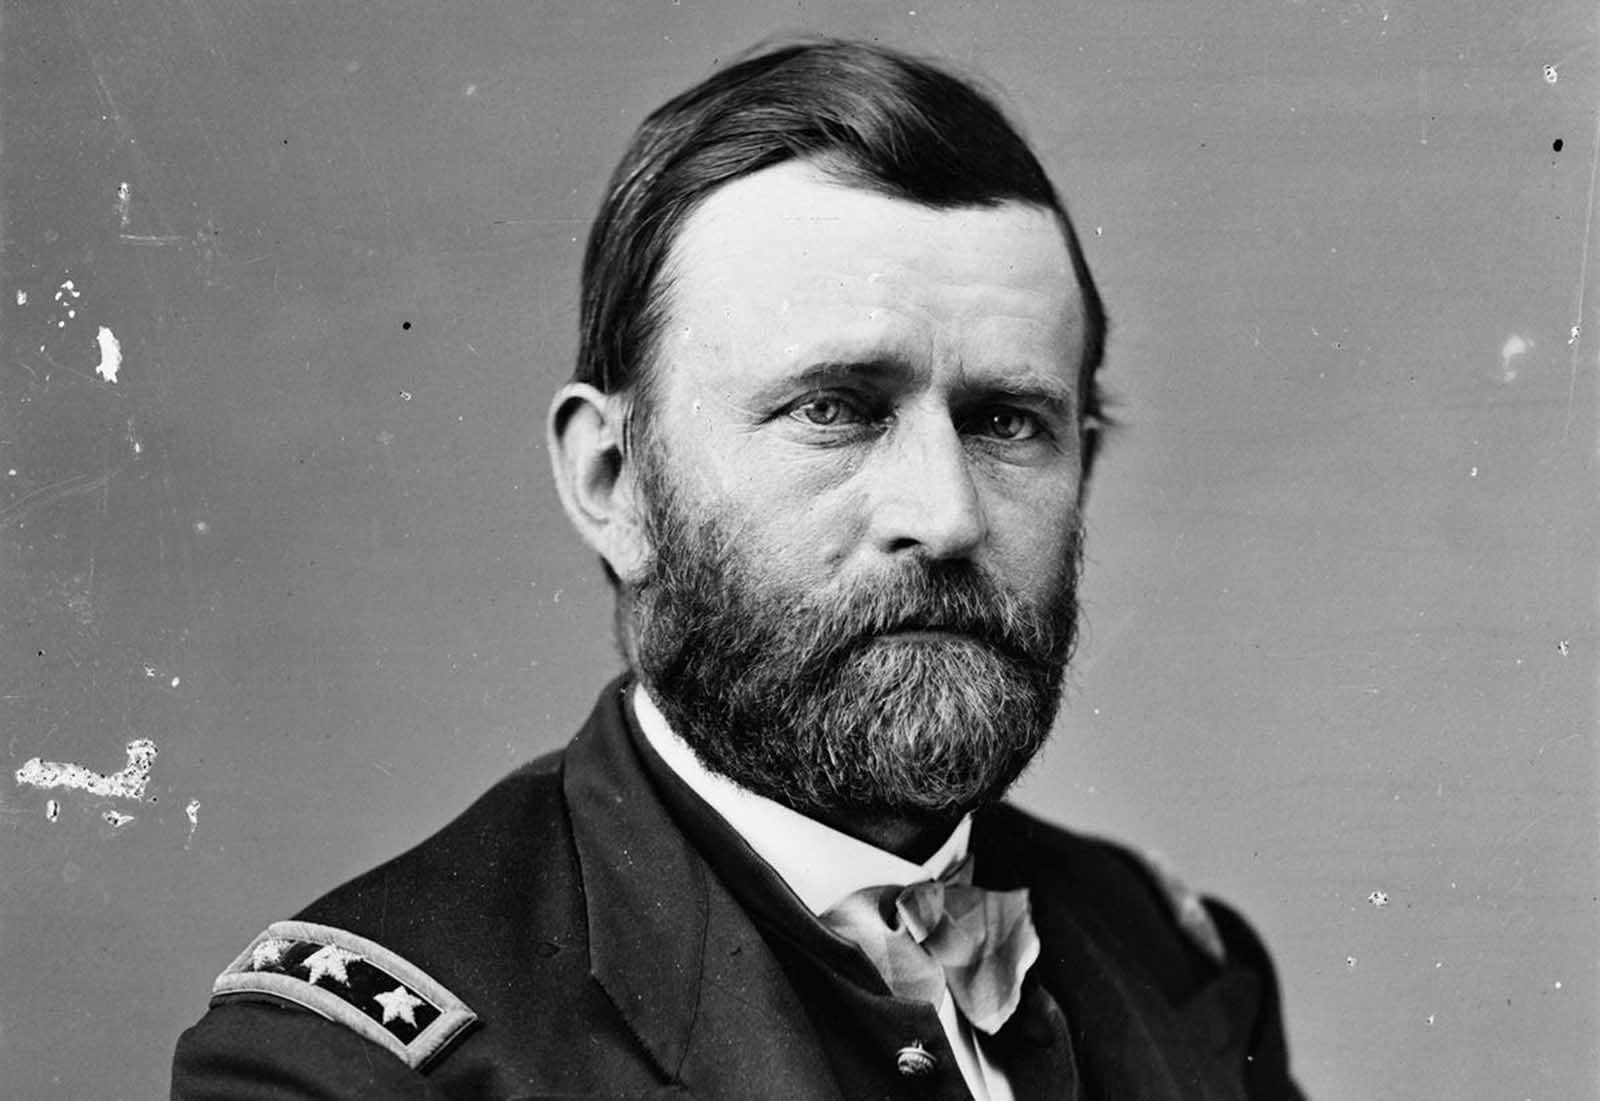 Union General Ulysses S. Grant served as Commanding General of the Army during the Civil War. After the war, his popularity in the North helped him to win the U.S. presidency in 1868, and again in 1872.